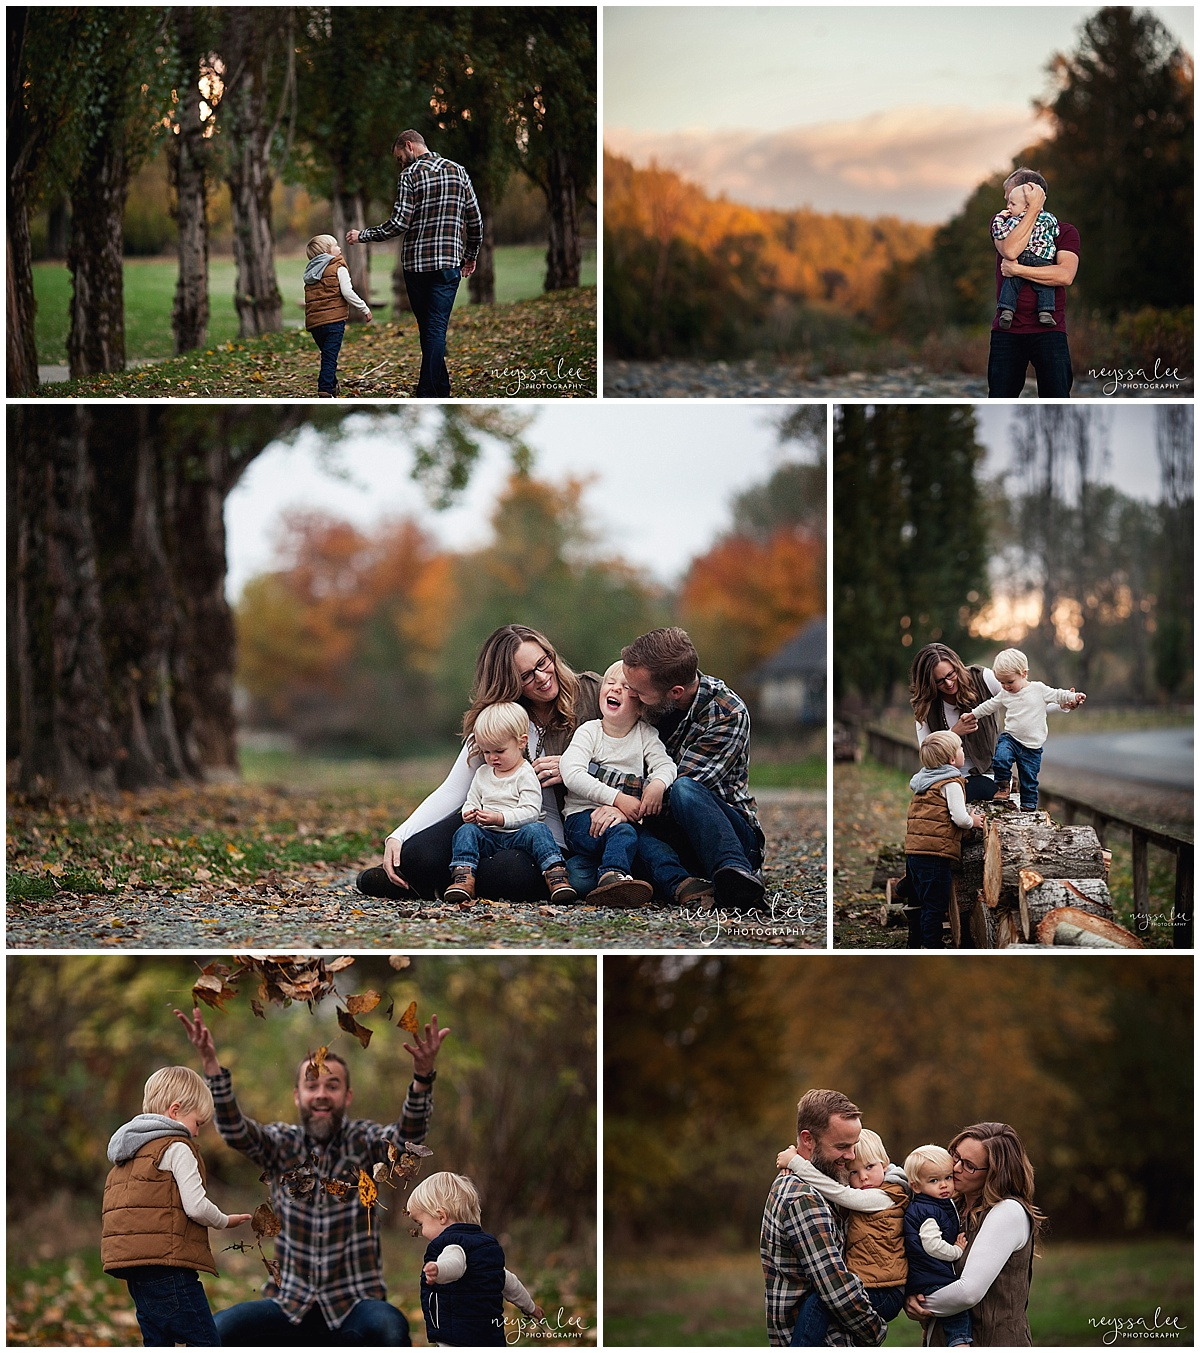 Favorite Locations for Fall Family Photos around Seattle, Neyssa Lee Photography, Snoqualmie Family Photographer,  Fall City Community Park